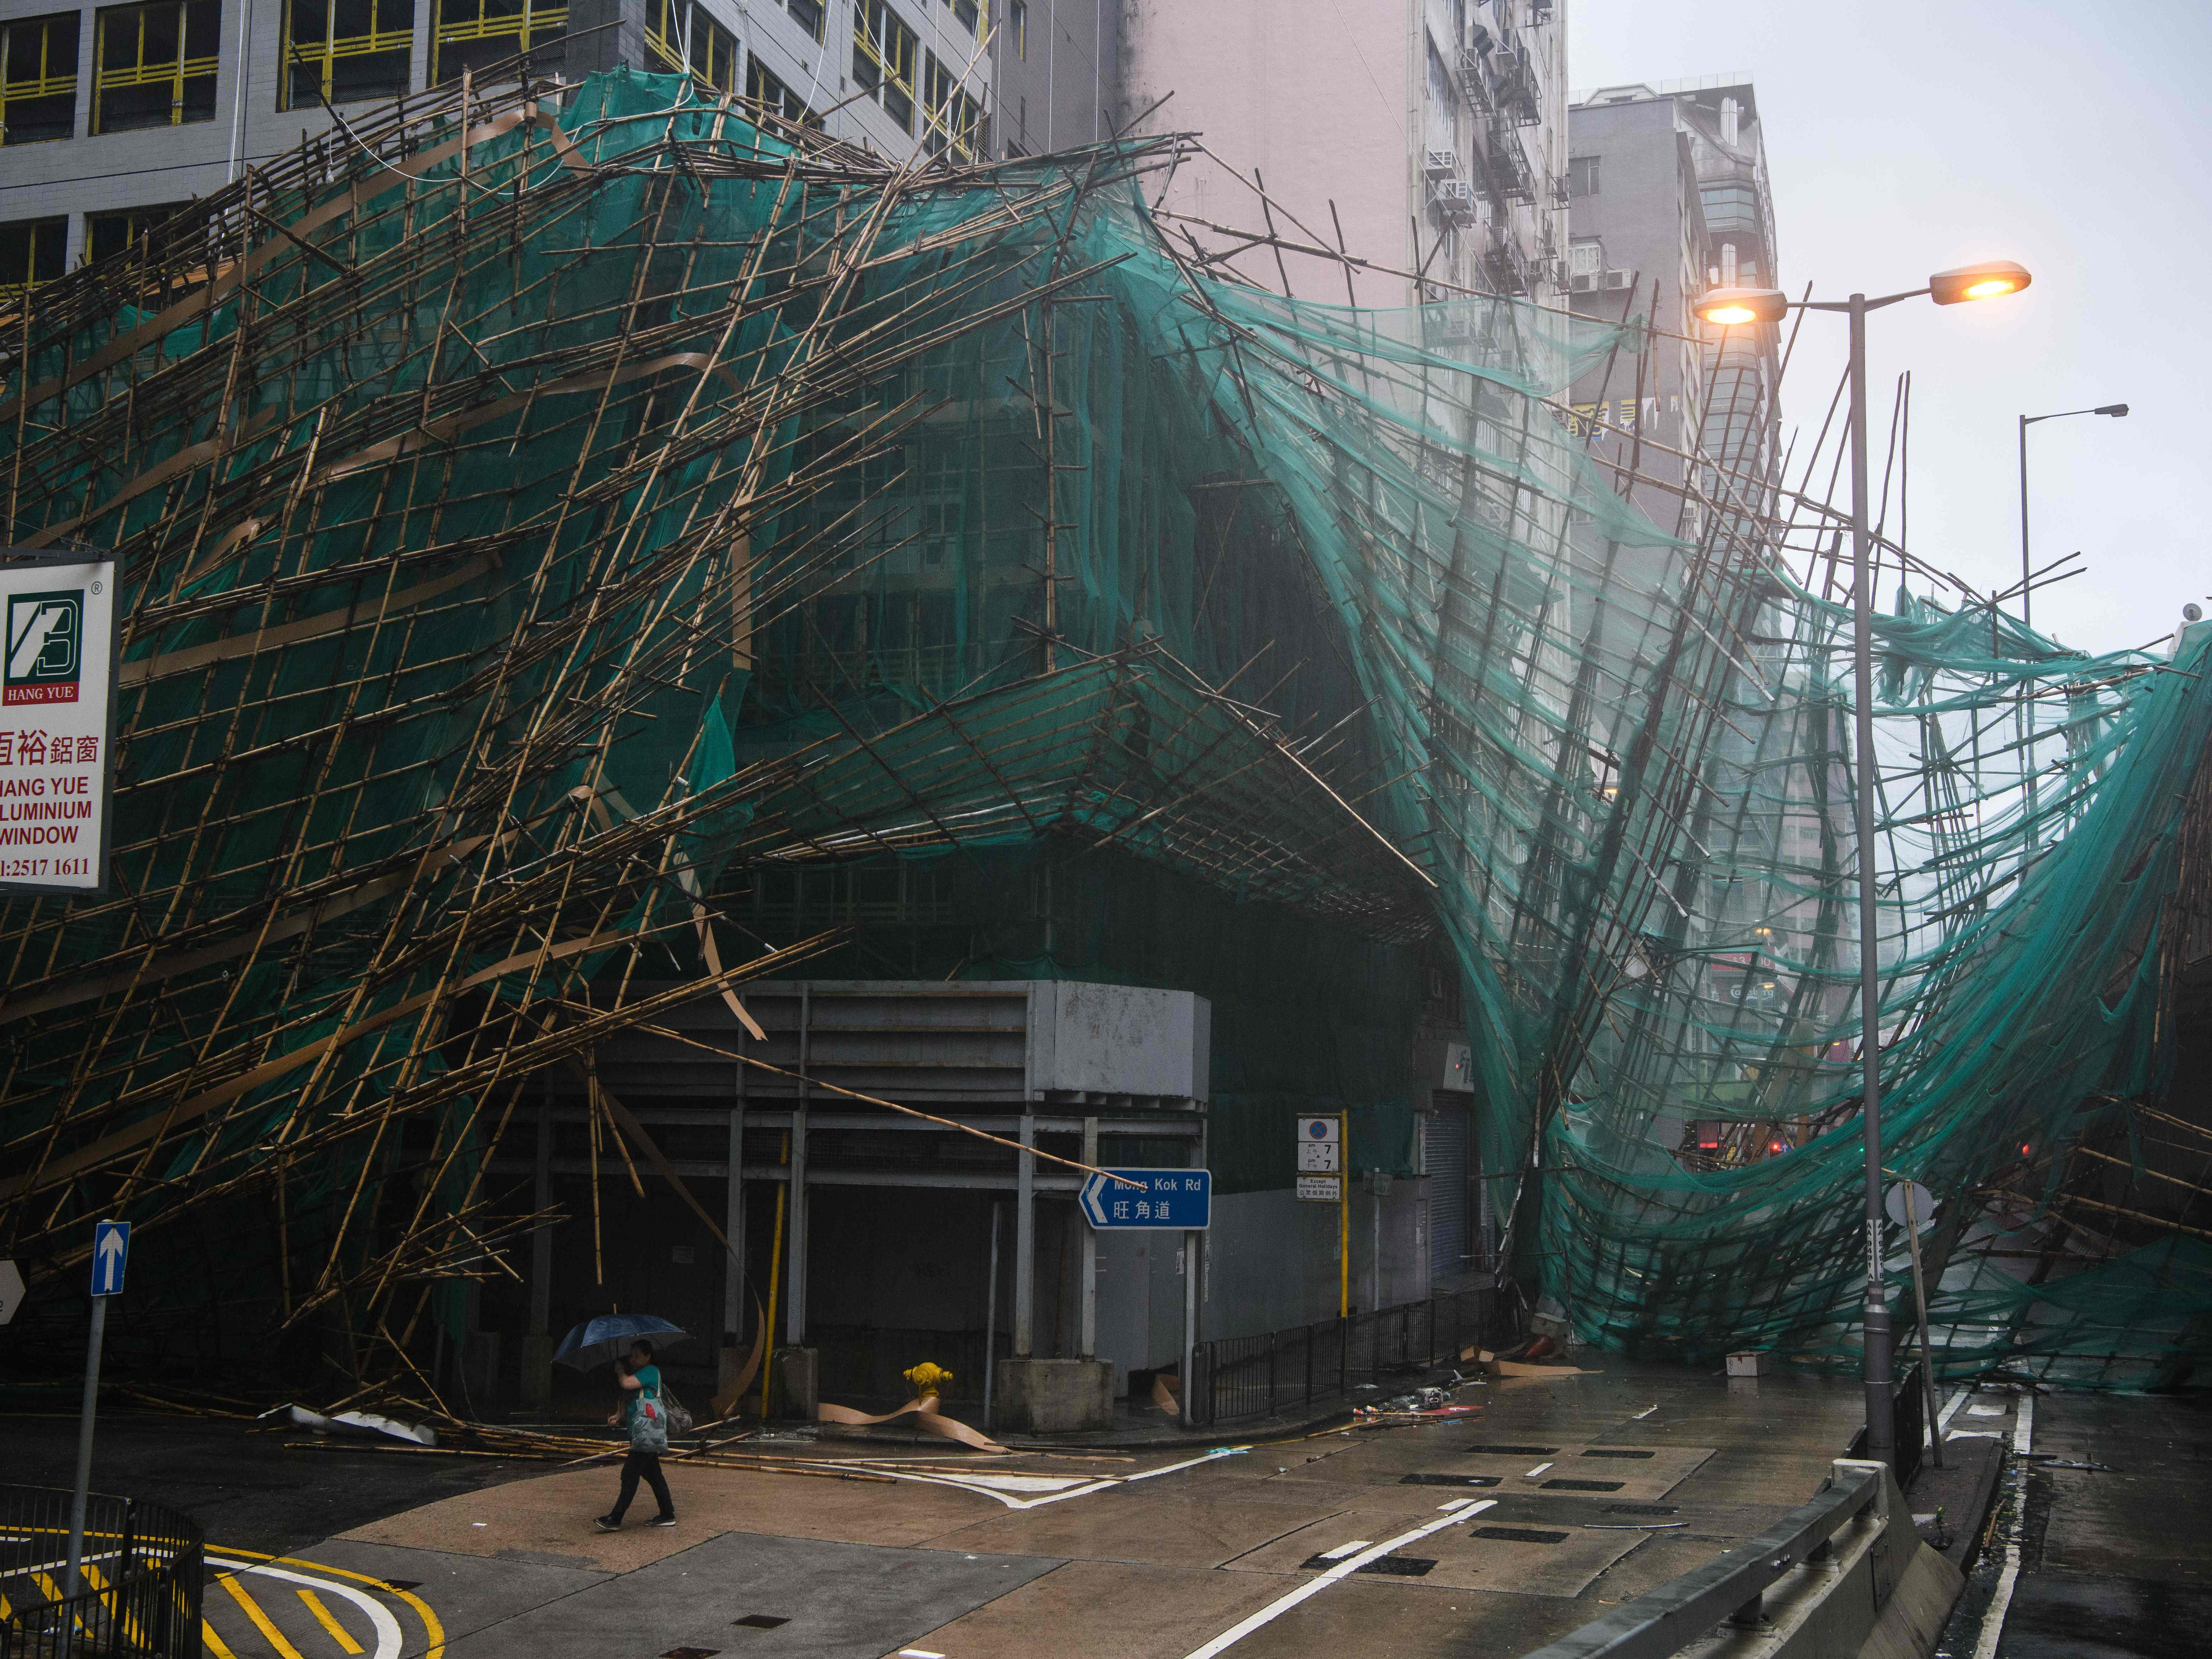 A woman uses her umbrella as she walks past collapsed bamboo scaffolding hanging from a building during Super Typhoon Mangkhut in Hong Kong on Sept. 16, 2018.